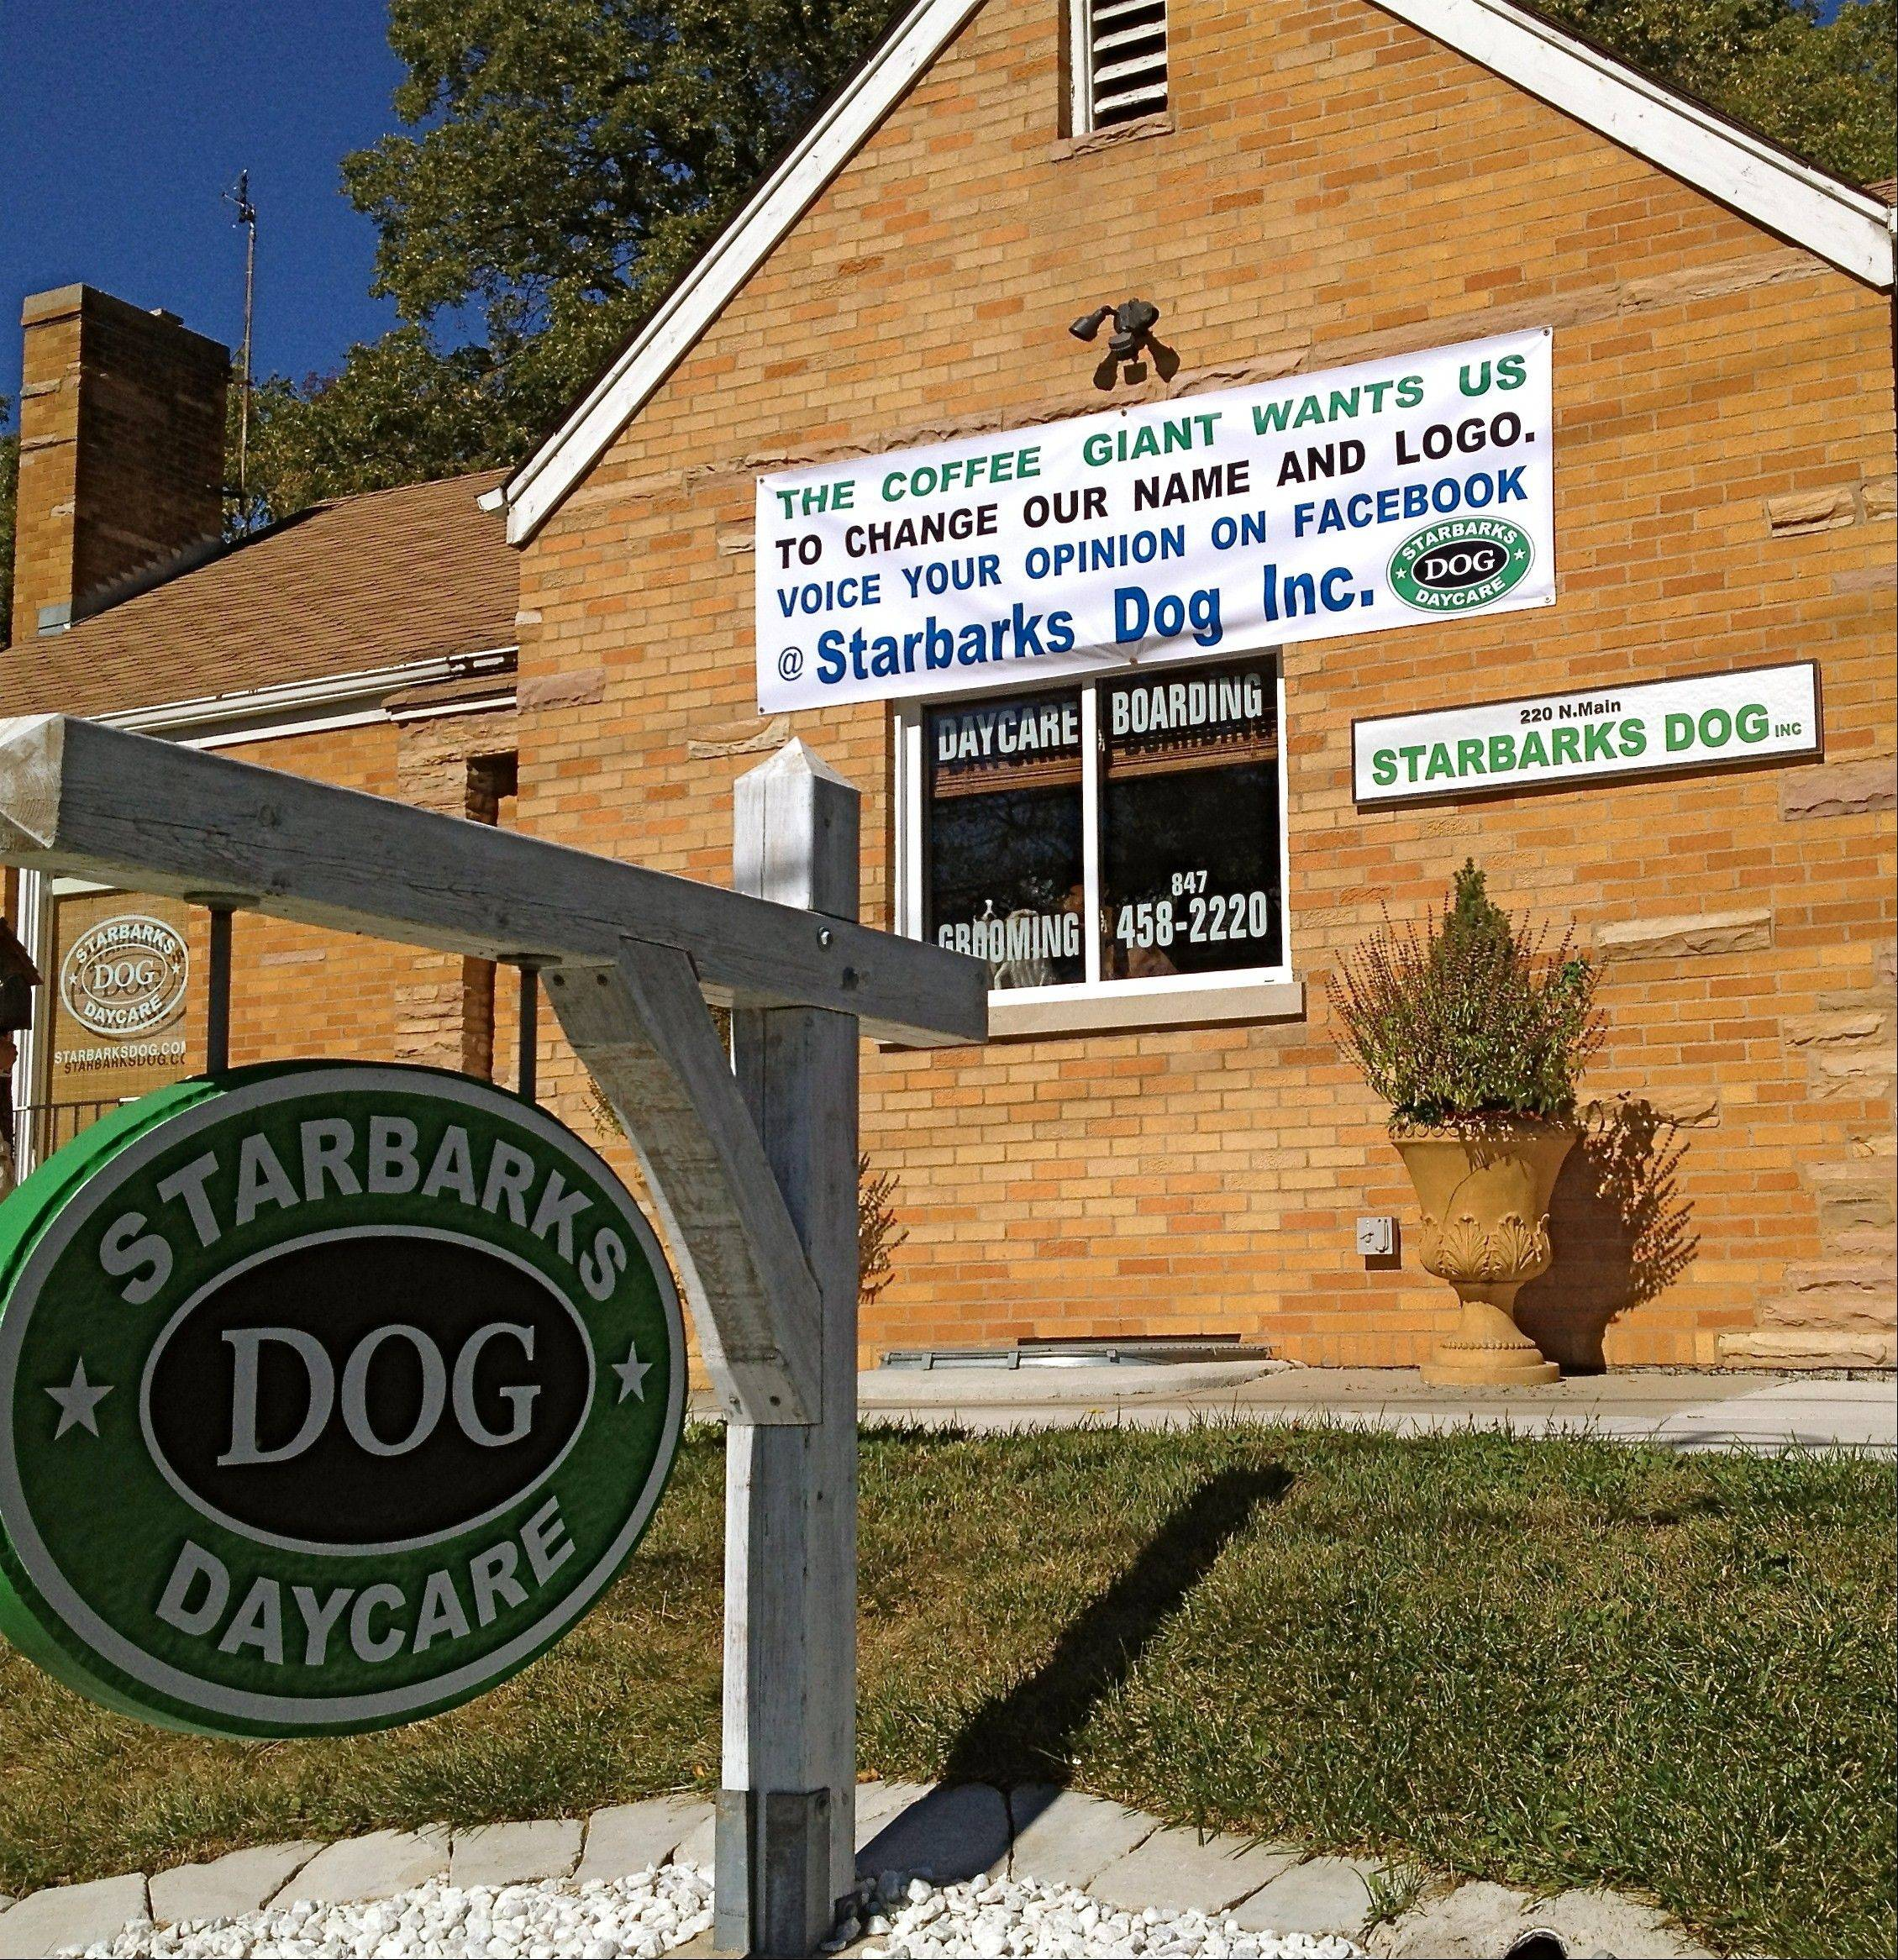 This Algonquin dog service is in the trademark doghouse. Coffee giant Starbucks is requesting the owners stop using the Starbarks name and logo.